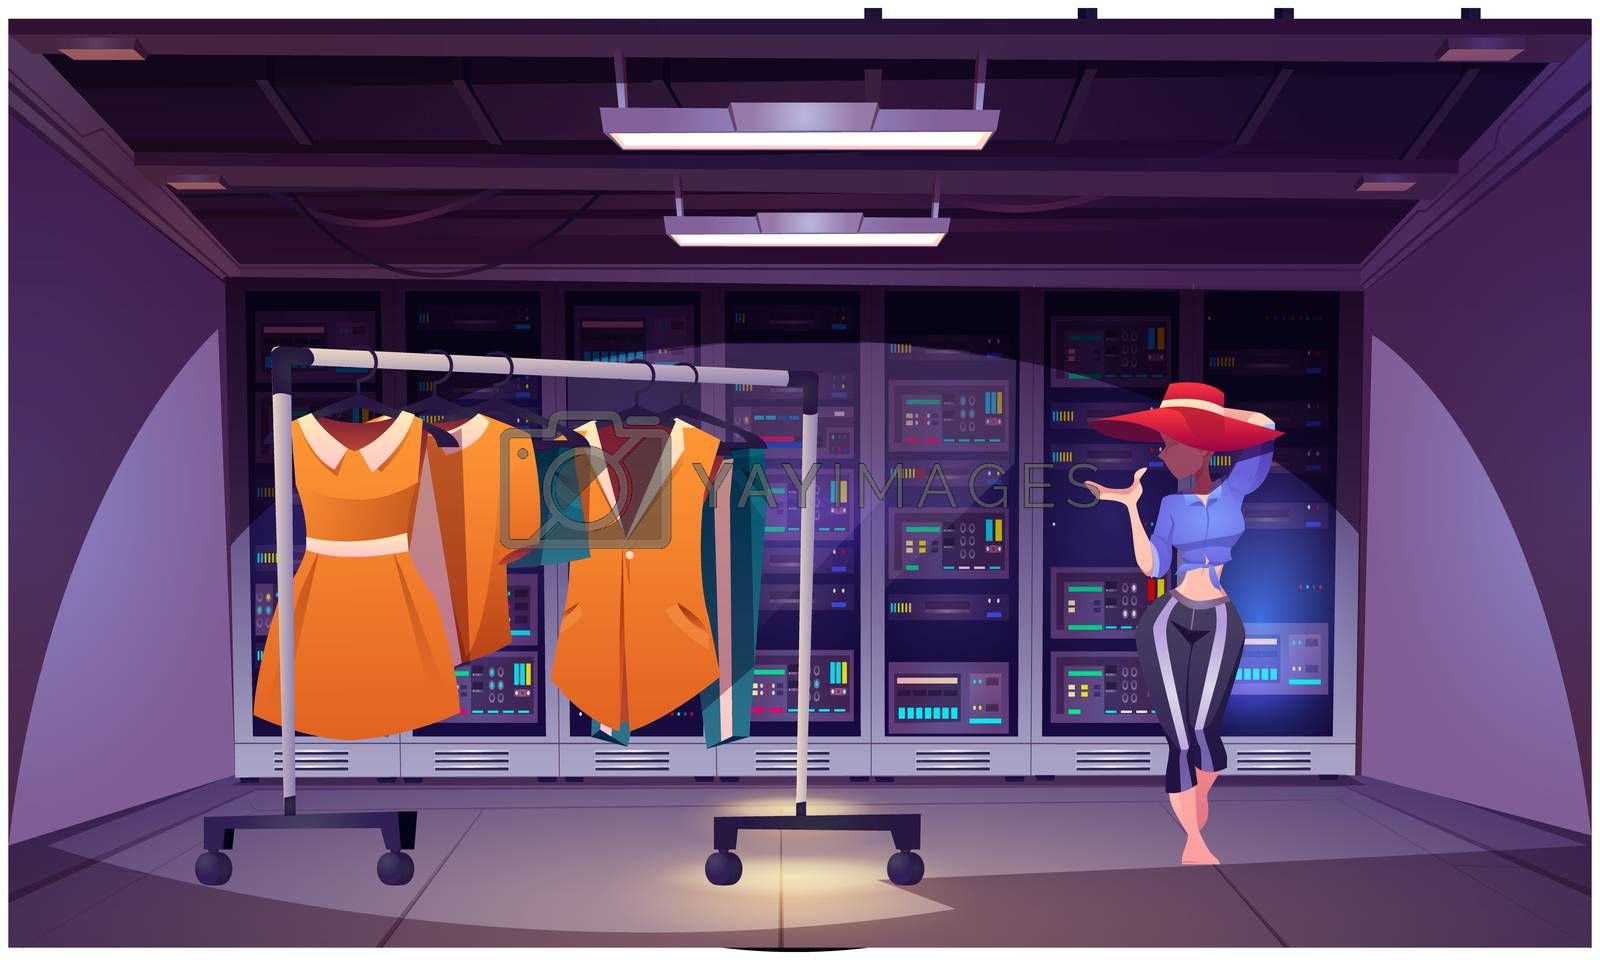 mock up illustration of designer showroom on abstract background by Aanav Creations